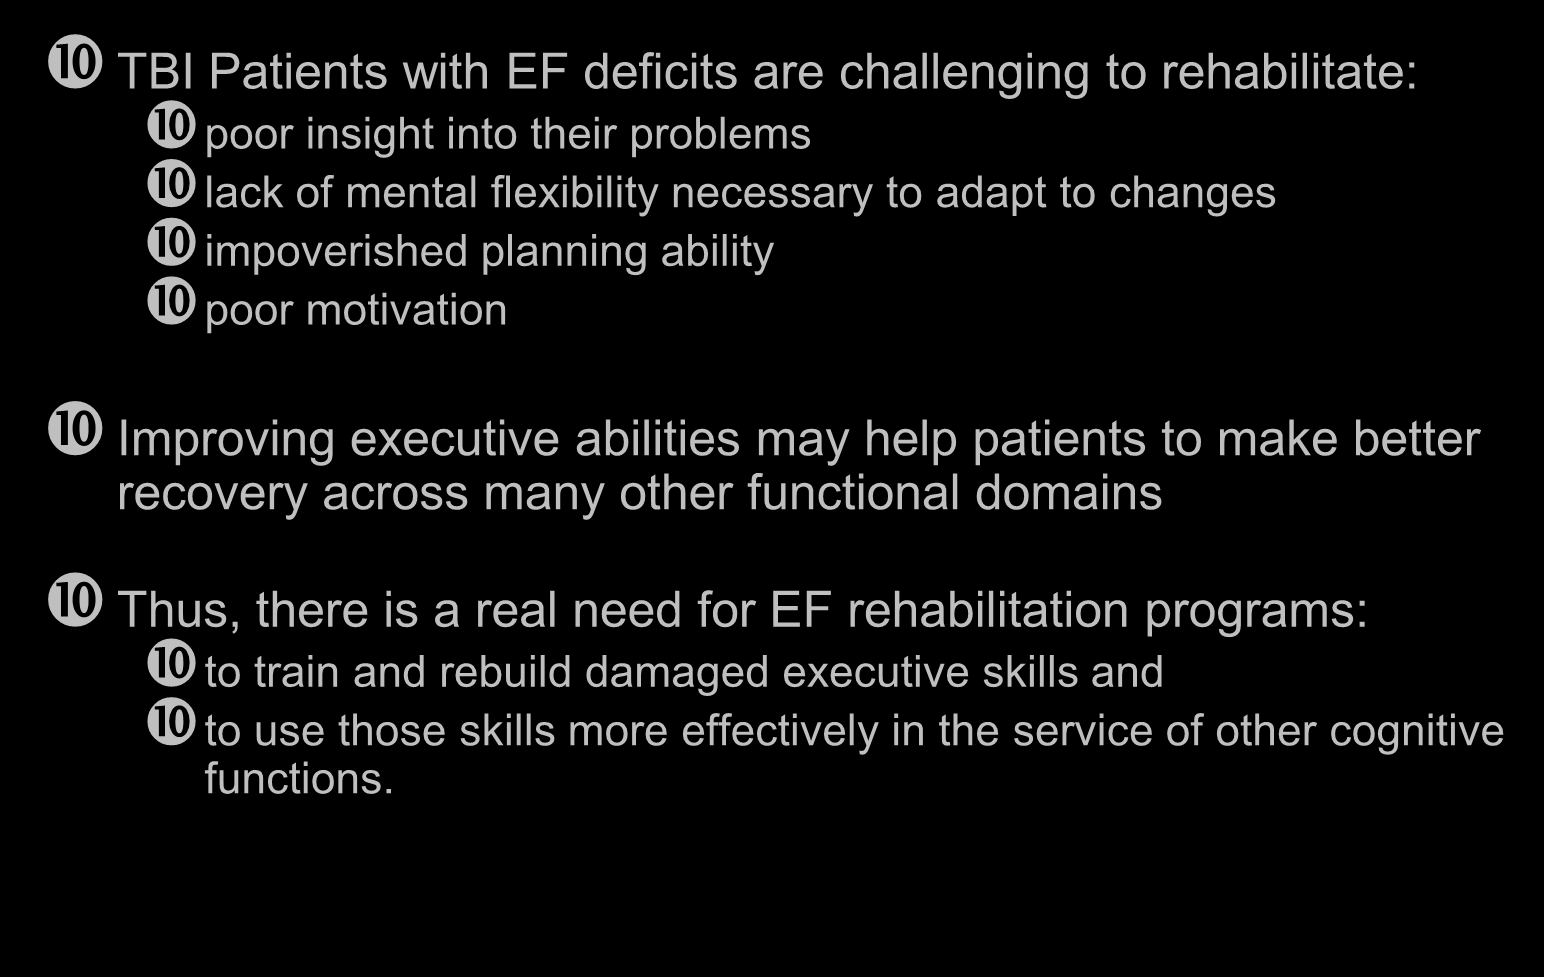 Executive Function (EF) Rehabilitation TBI Patients with EF deficits are challenging to rehabilitate: poor insight into their problems lack of mental flexibility necessary to adapt to changes